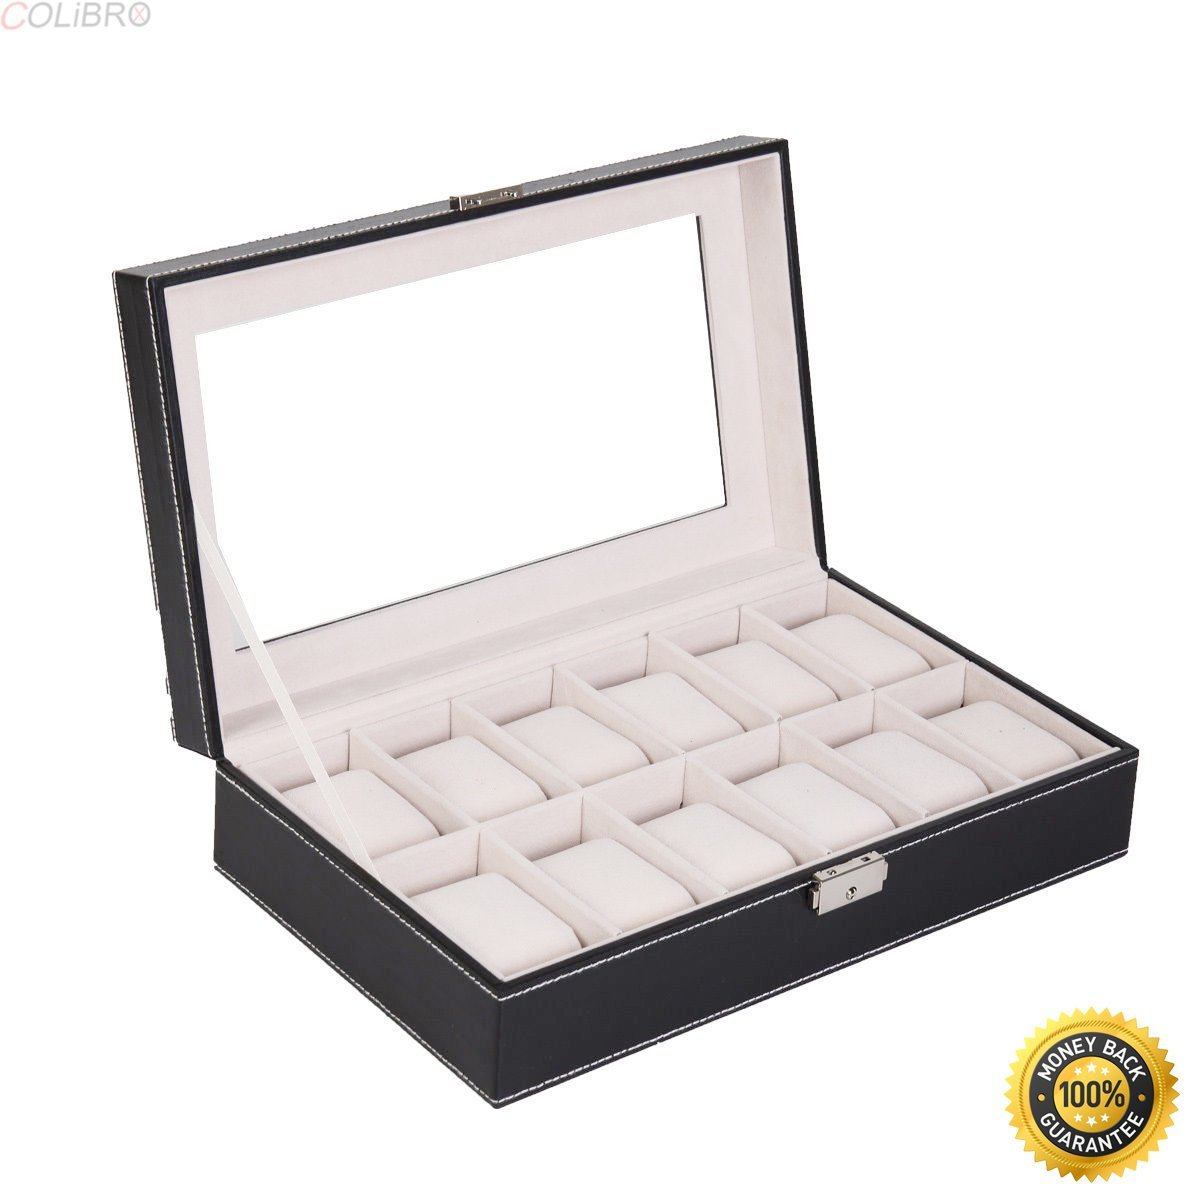 8ace61bf3 Get Quotations · COLIBROX.12 Slot Watch Box Display Organizer Glass Top Jewelry  Storage Christmas Gift New